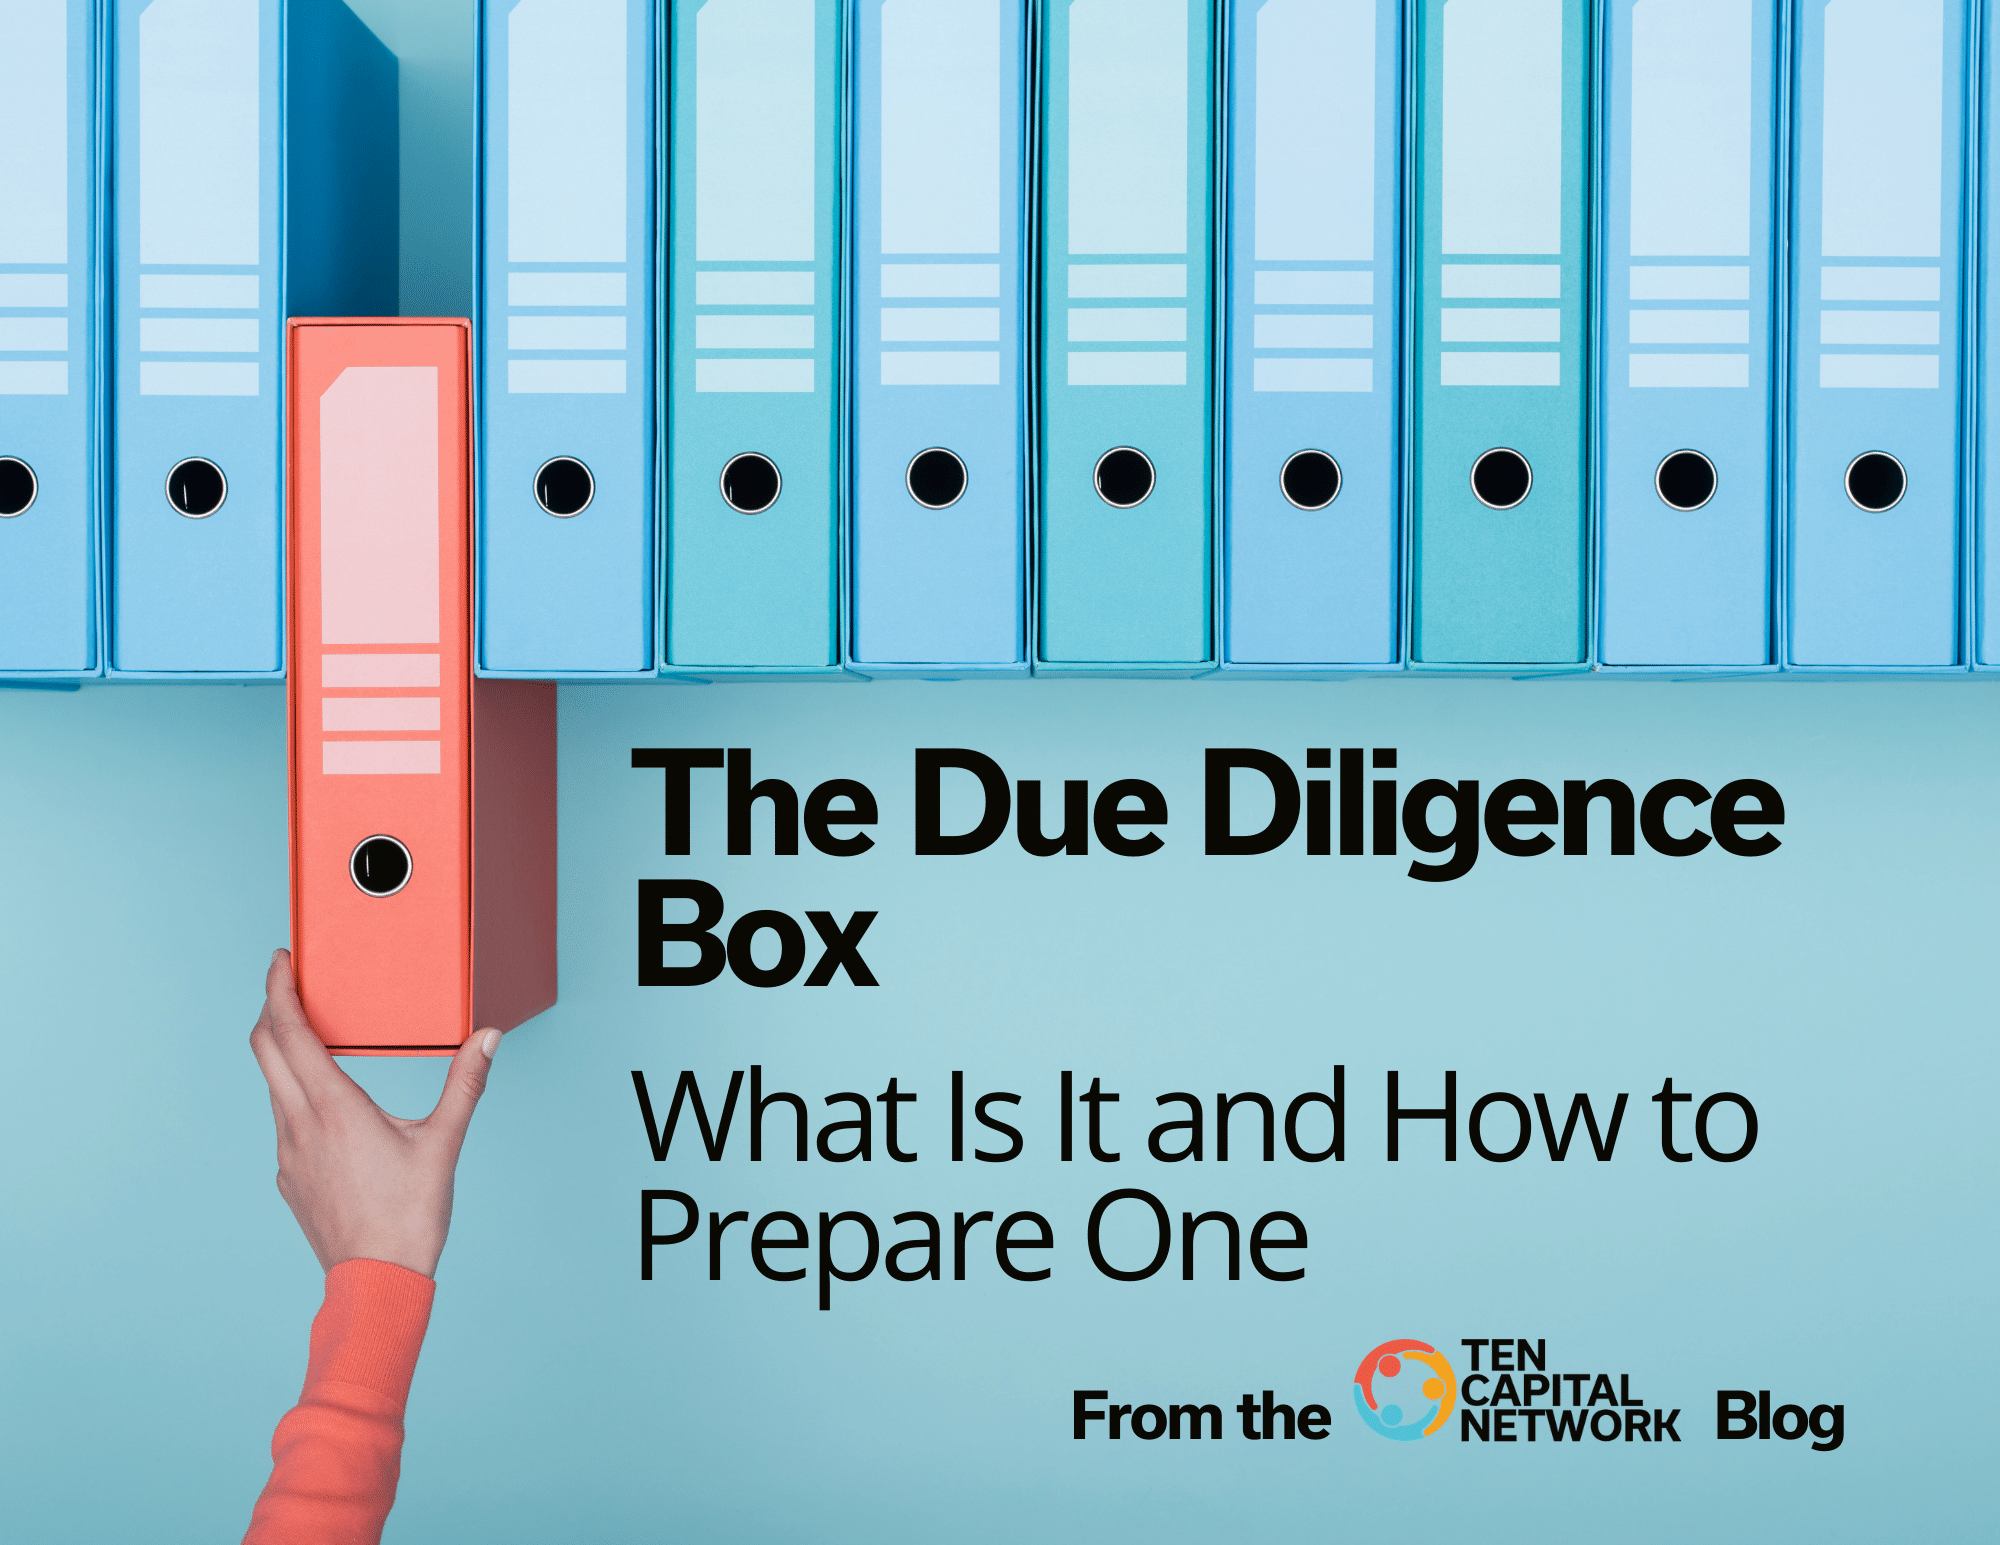 The Due Diligence Box: What Is It and How to Prepare One